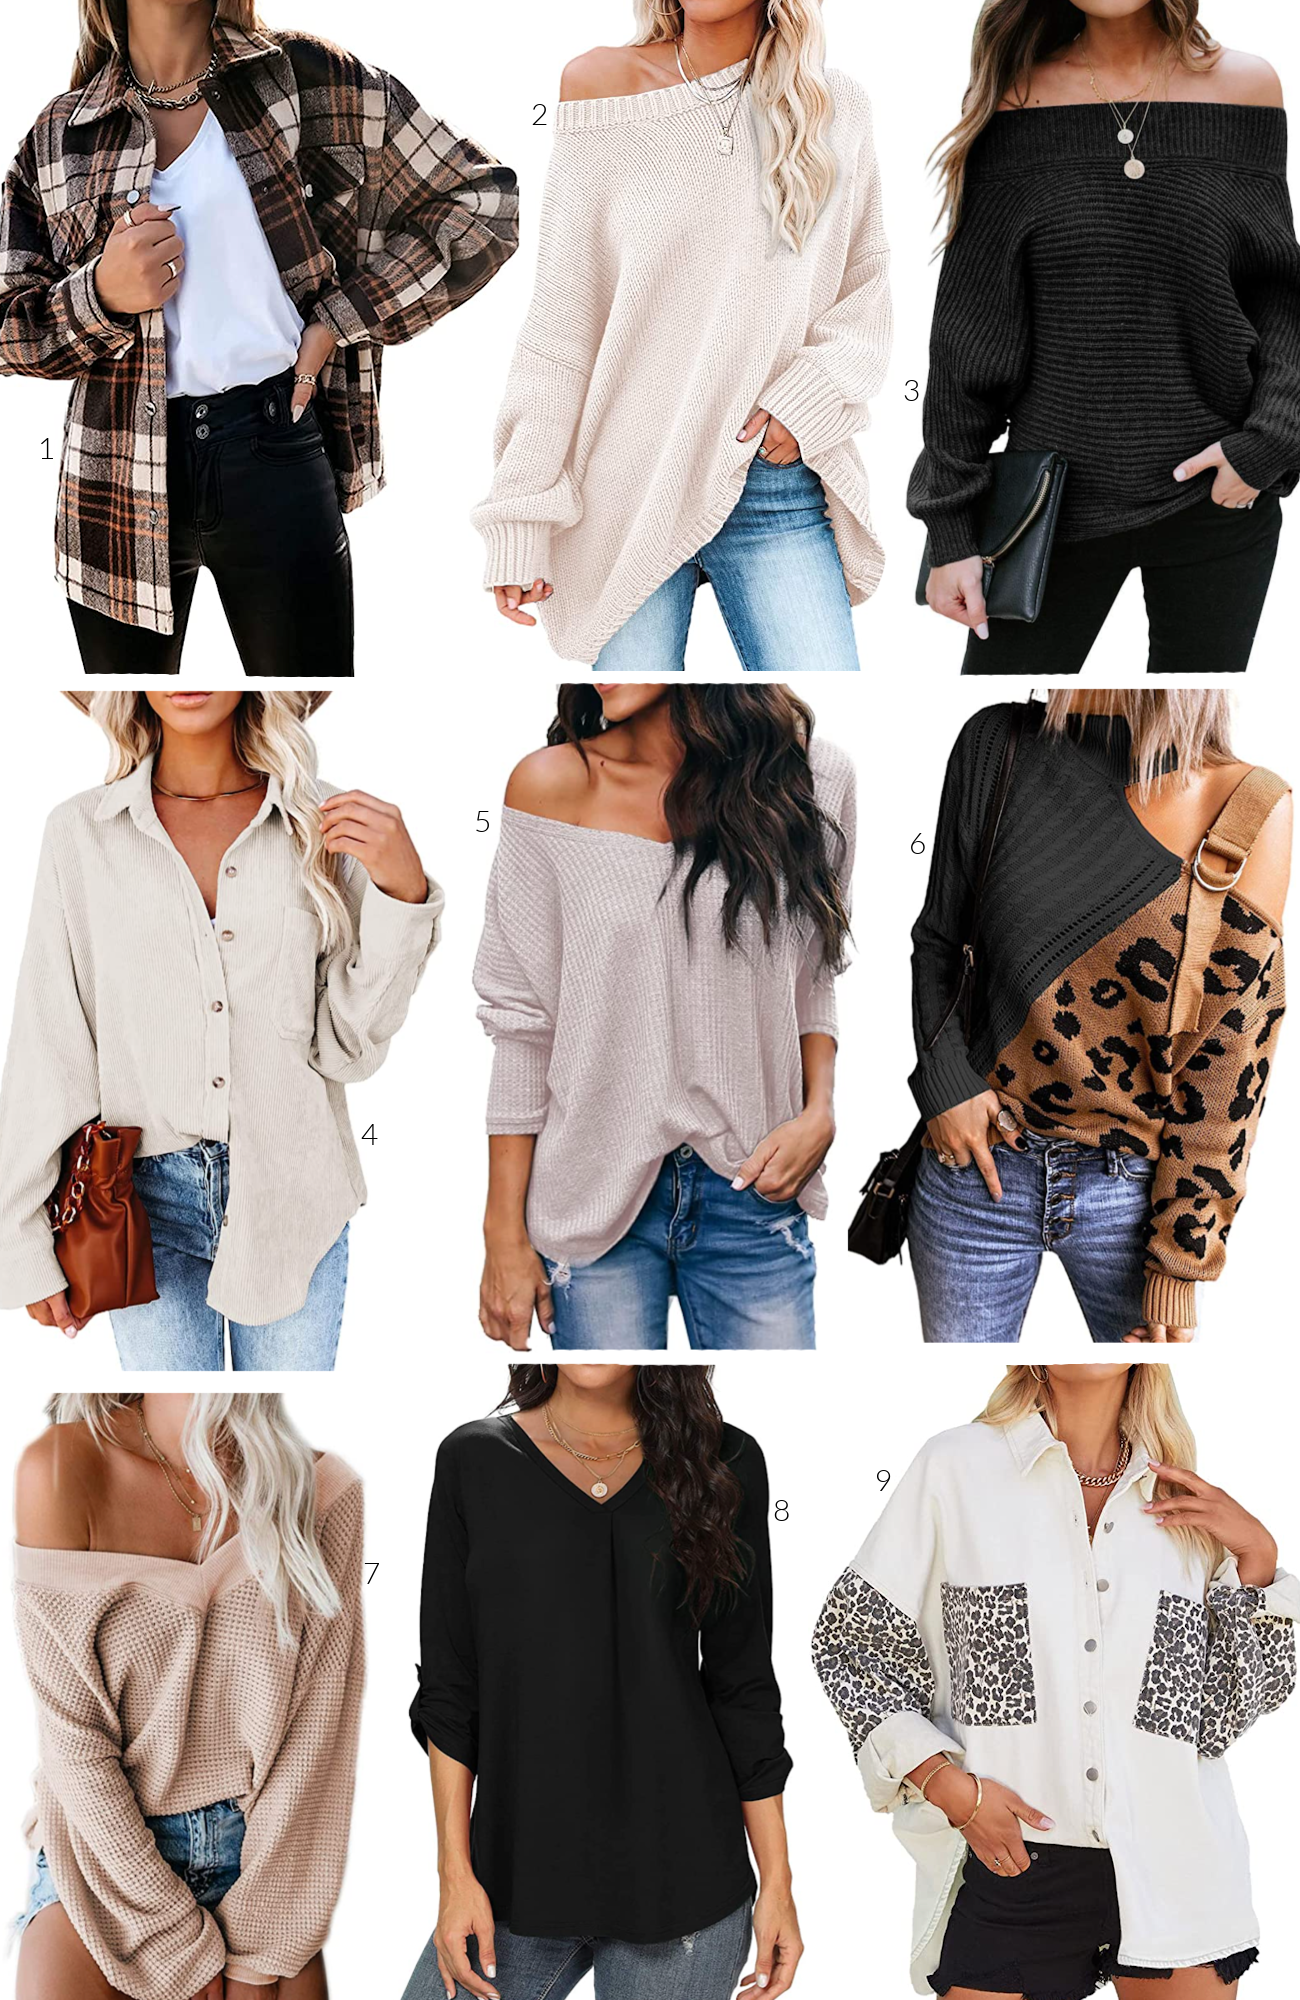 The best tops to wear with leggings, affordable Amazon tops, tops to hide tummy, tops to cover stomach, flattering sweaters for women, flattering tops for women